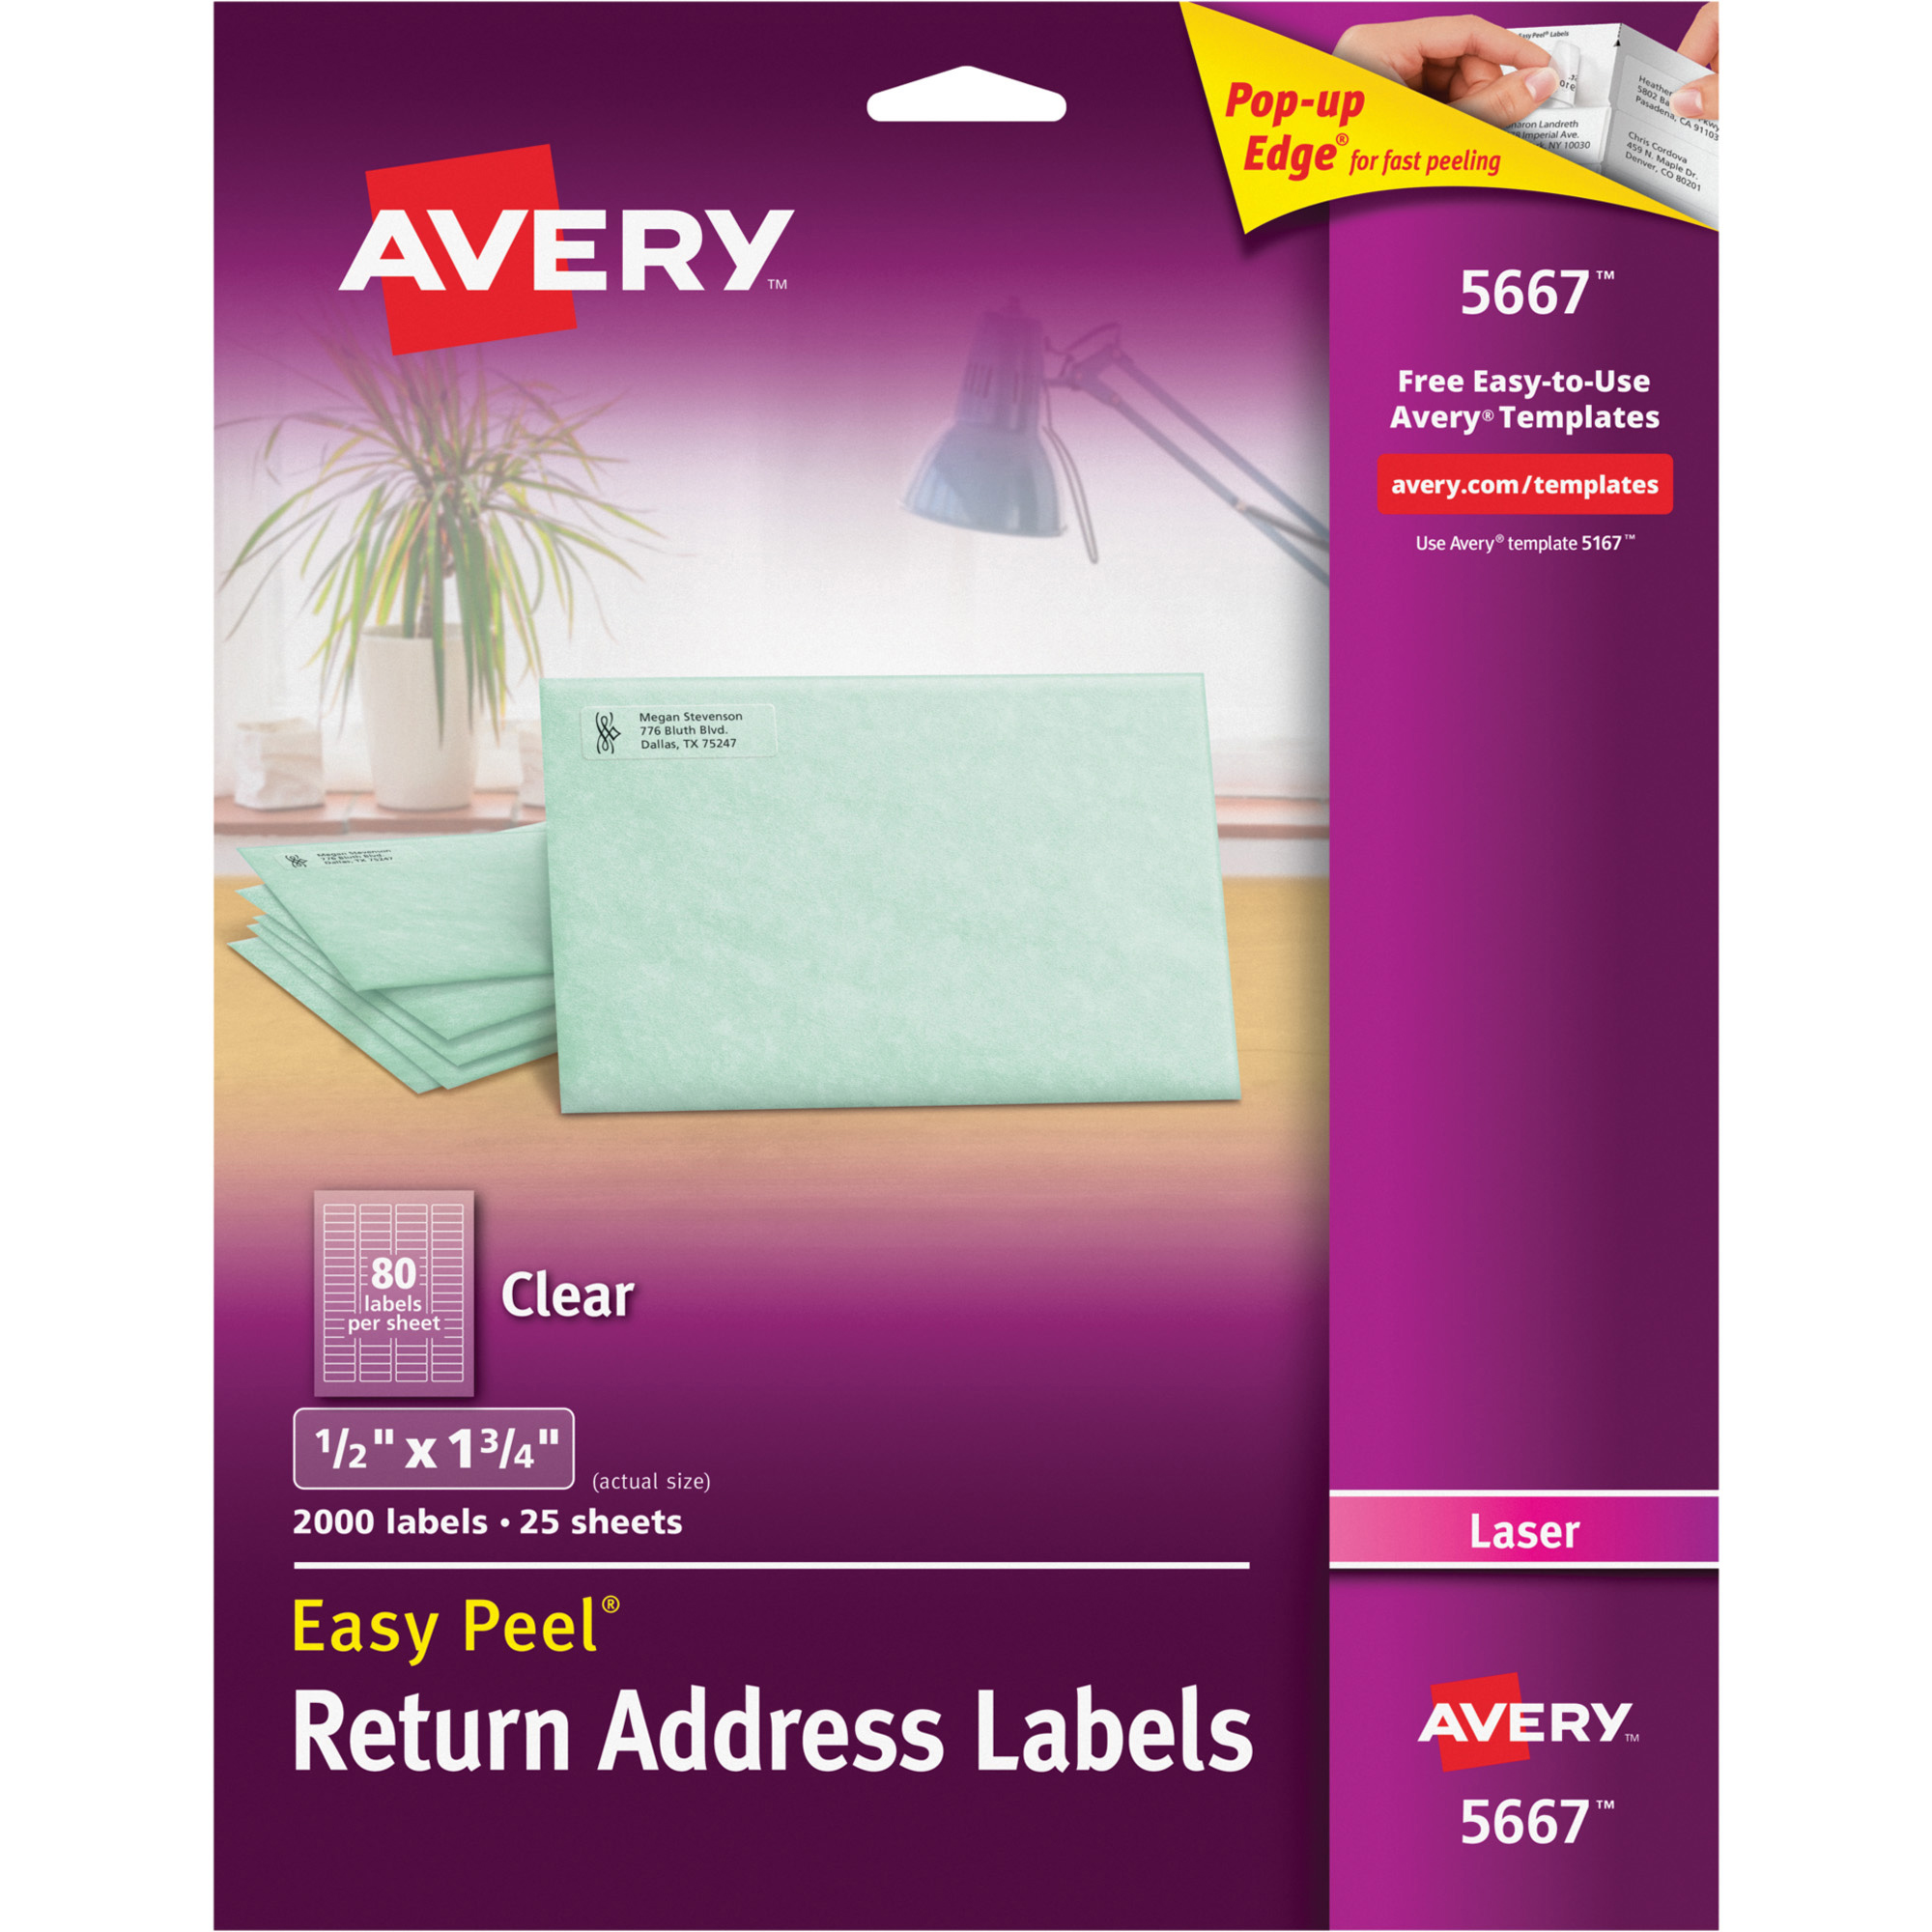 avery 5667 label template